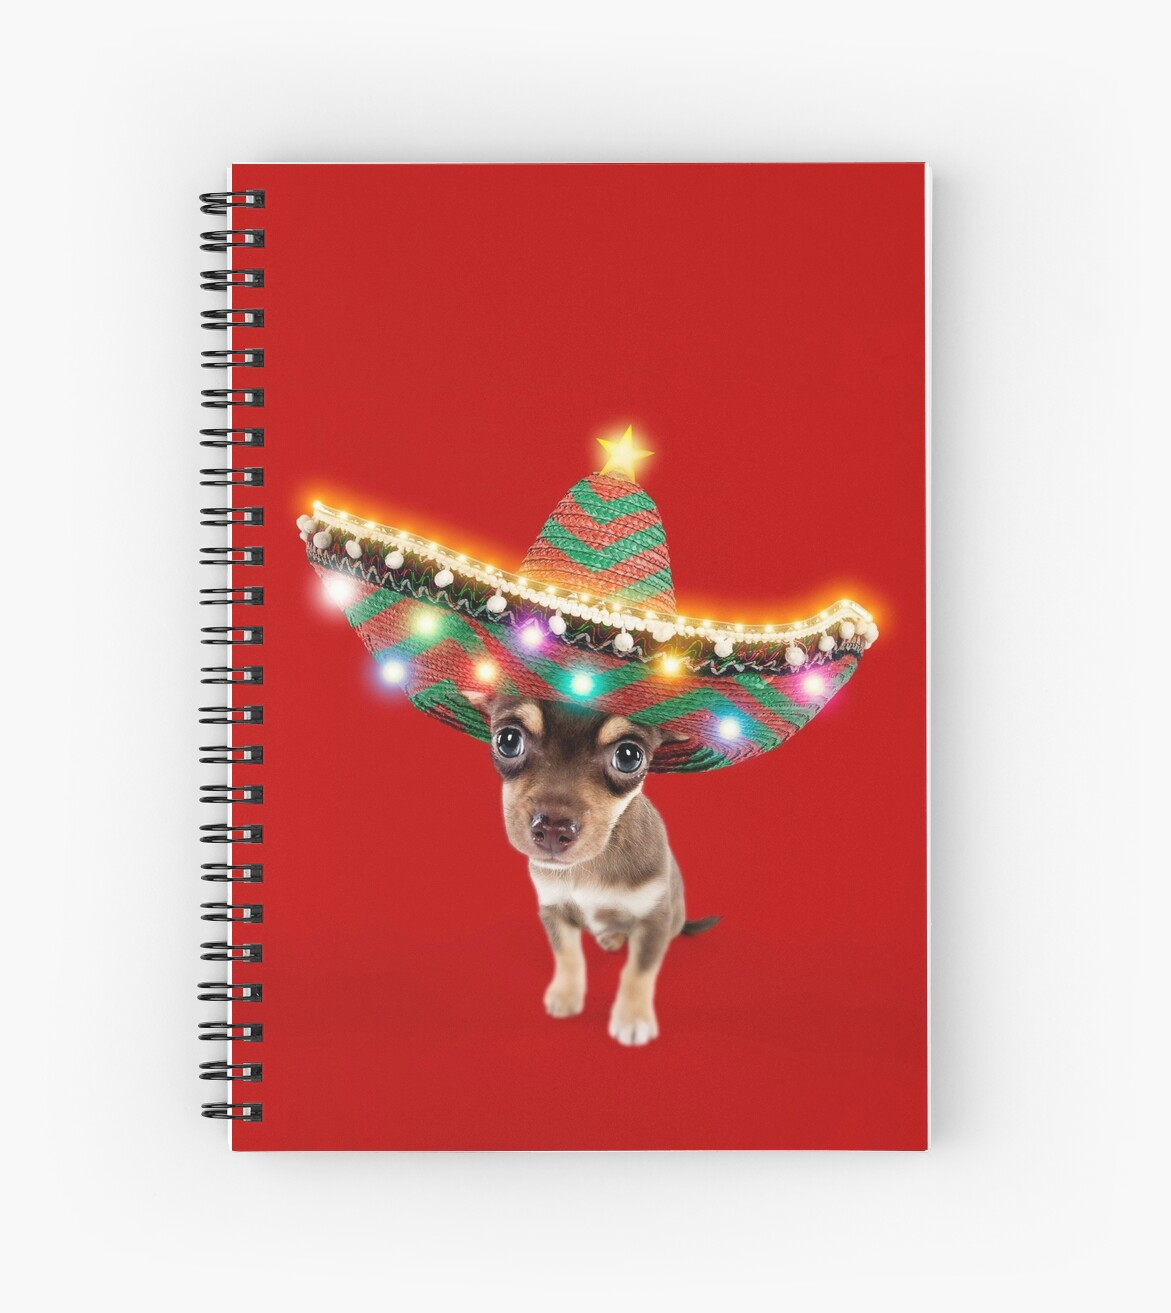 2e2a48f21184e Chihuahua dog wearing a sombrero hat with Christmas lights